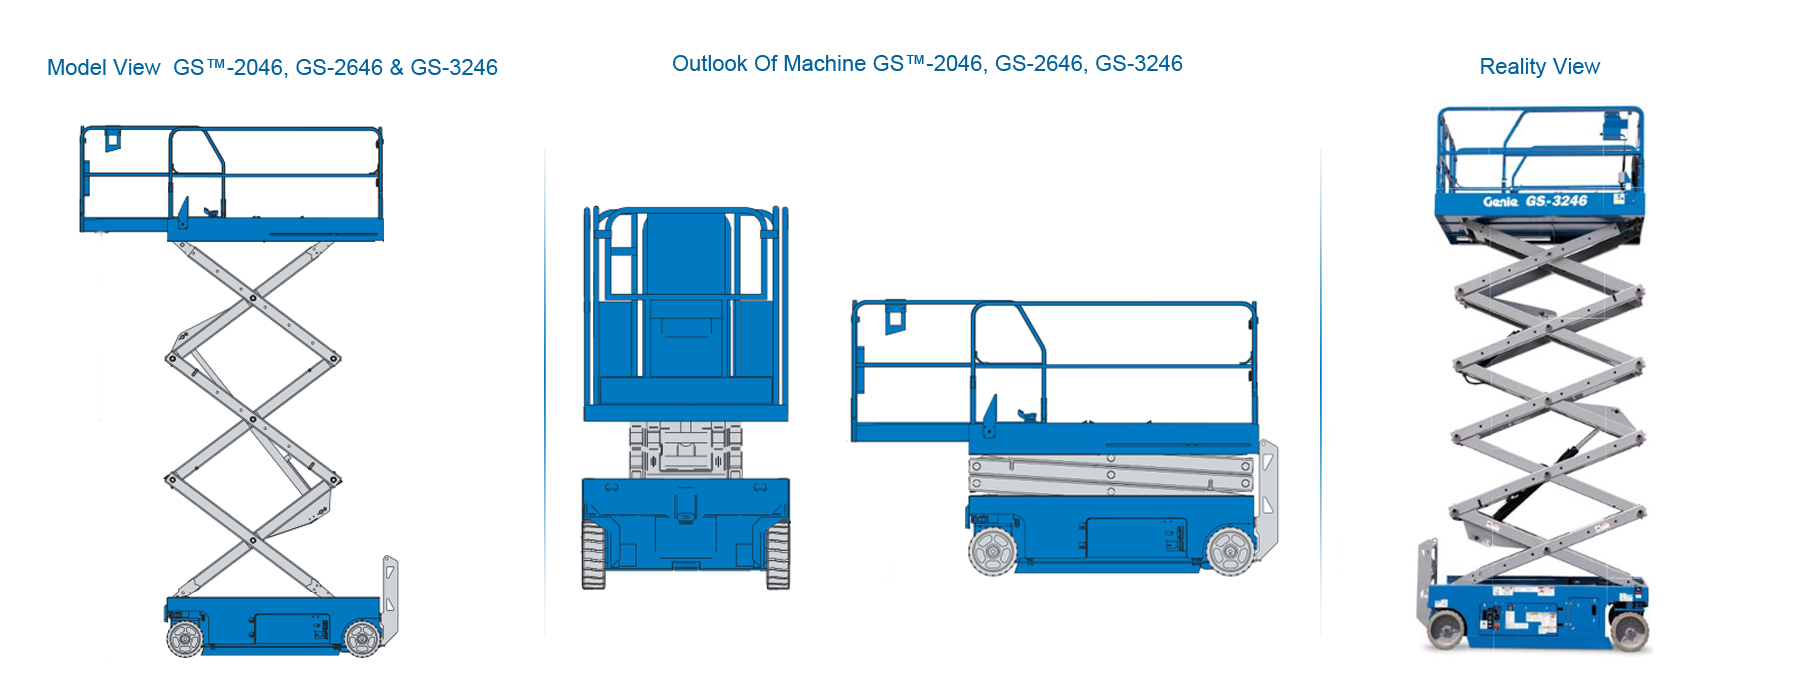 Over View of Genie Scissor Lifts GS™-3246